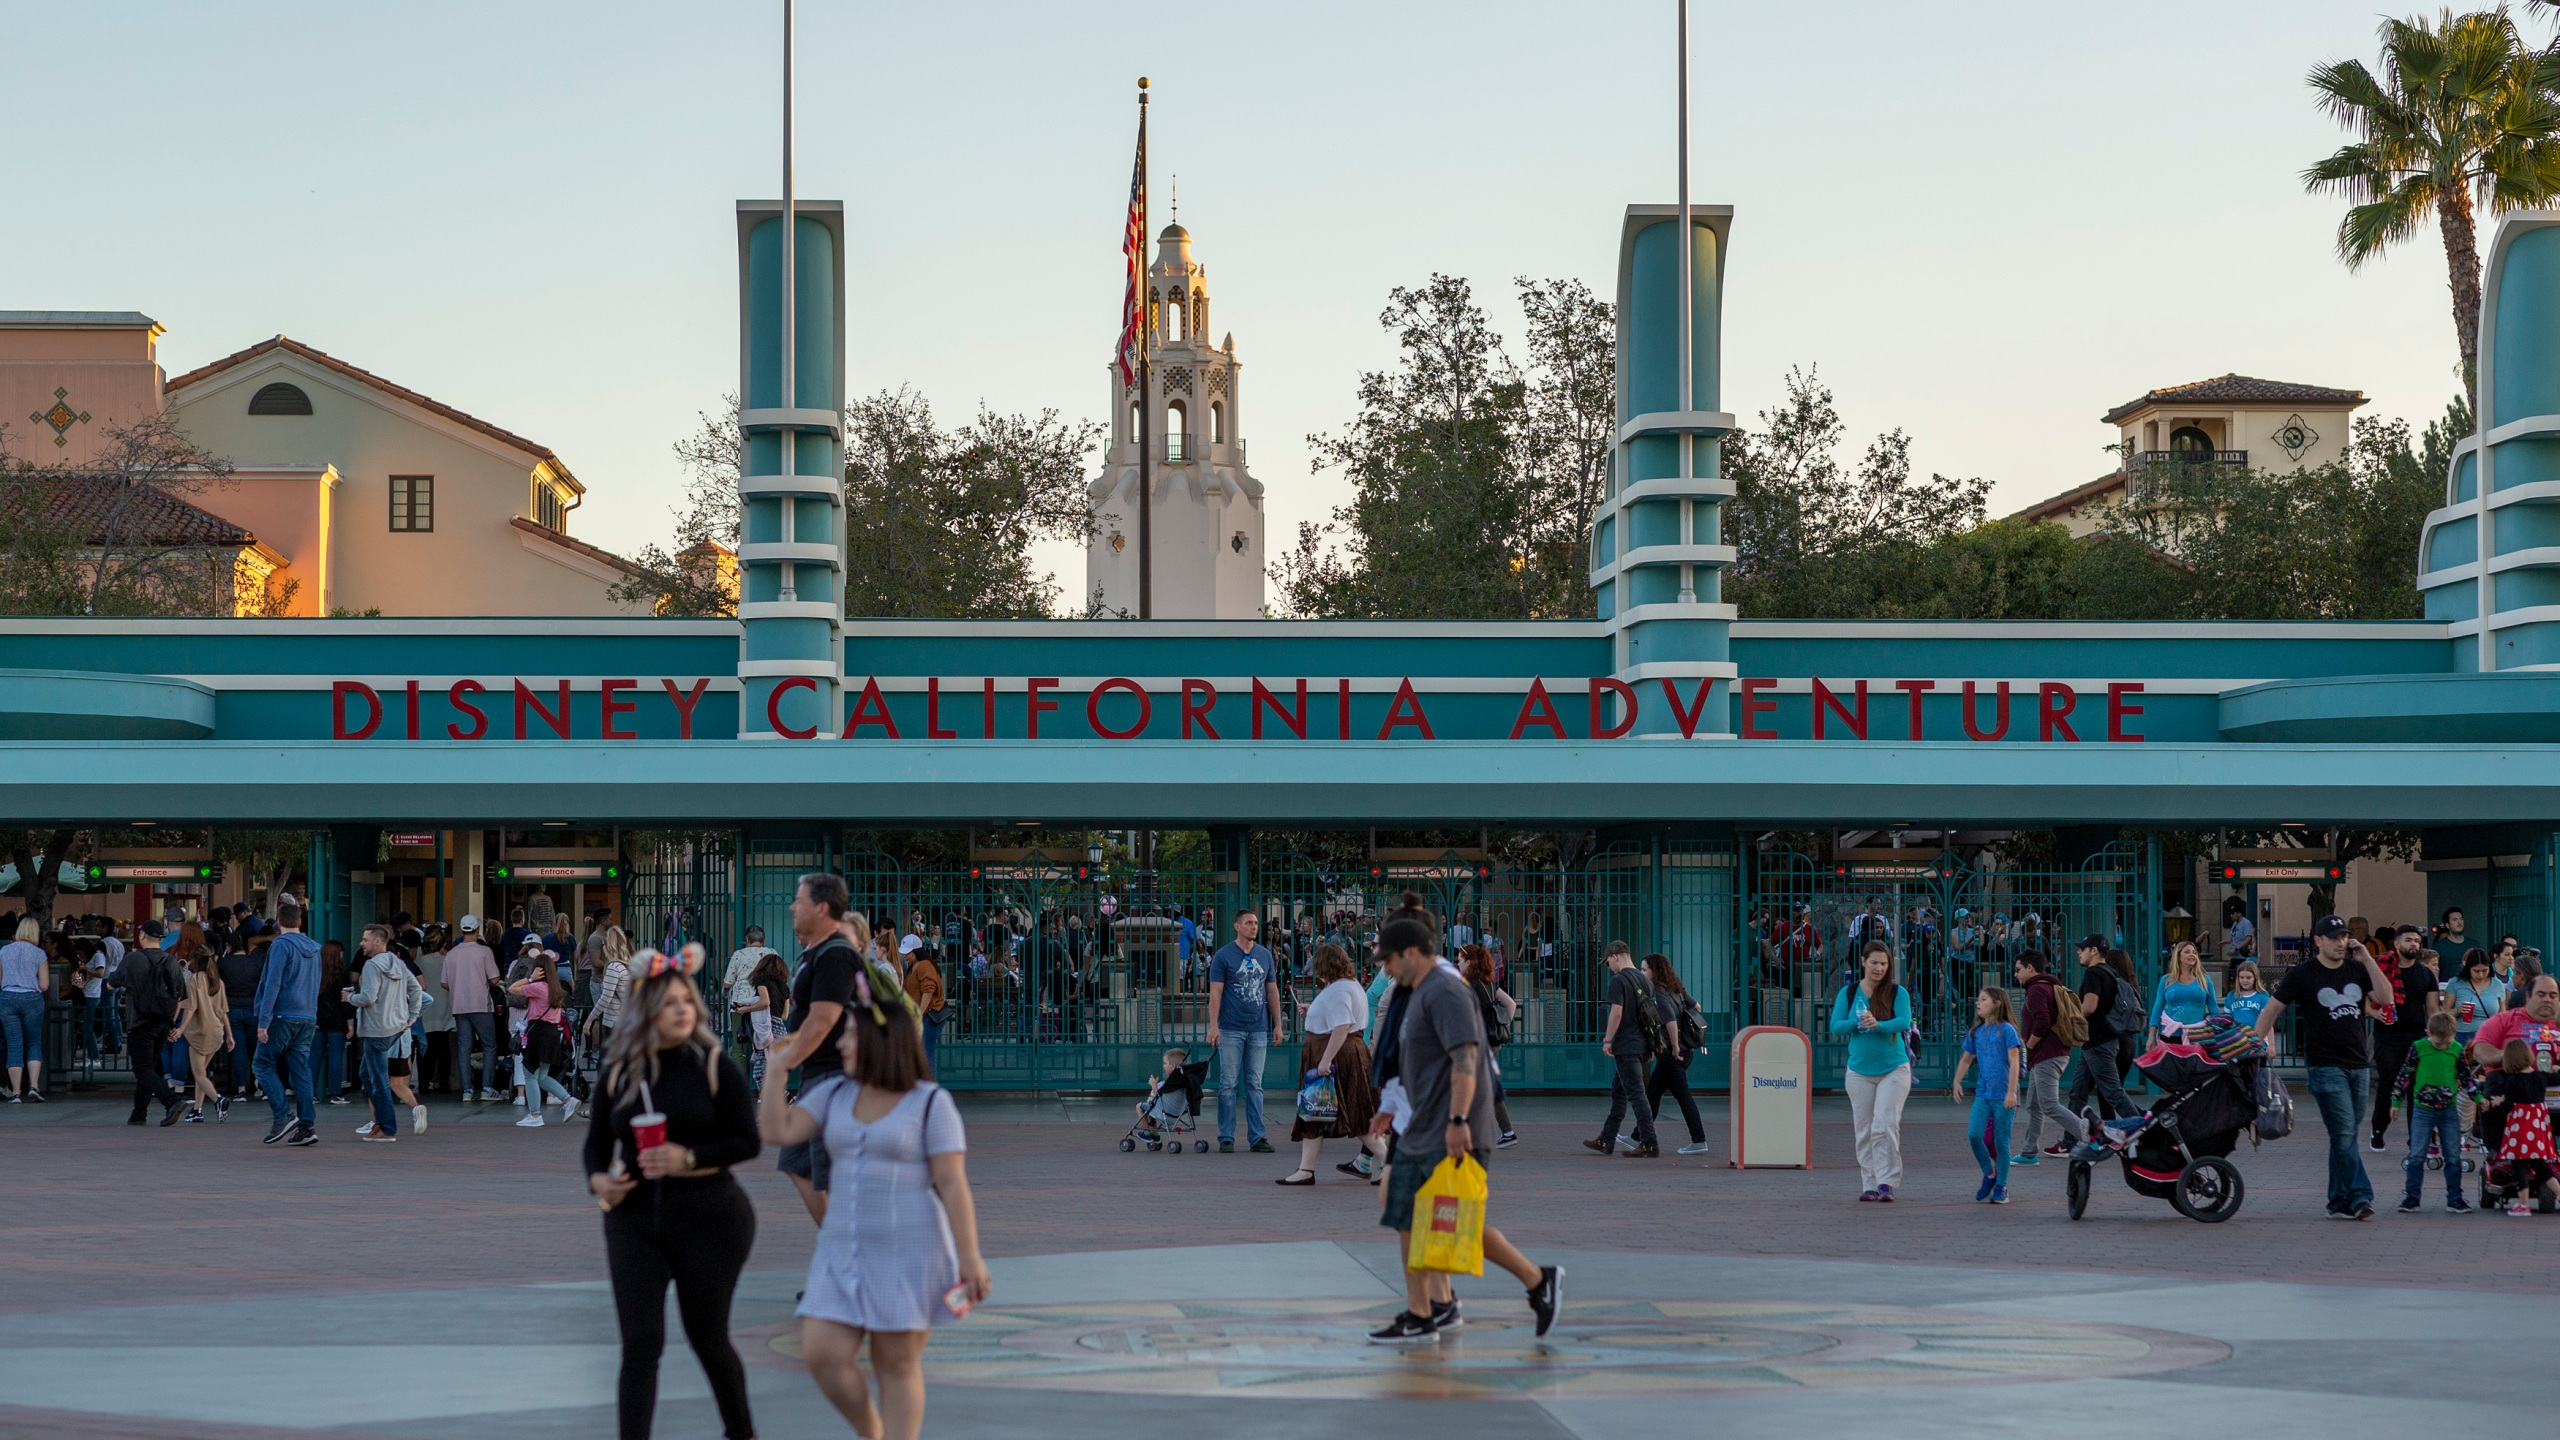 Visitors attend Disney California Adventure theme park on Feb. 25, 2020. (David McNew/Getty Images)